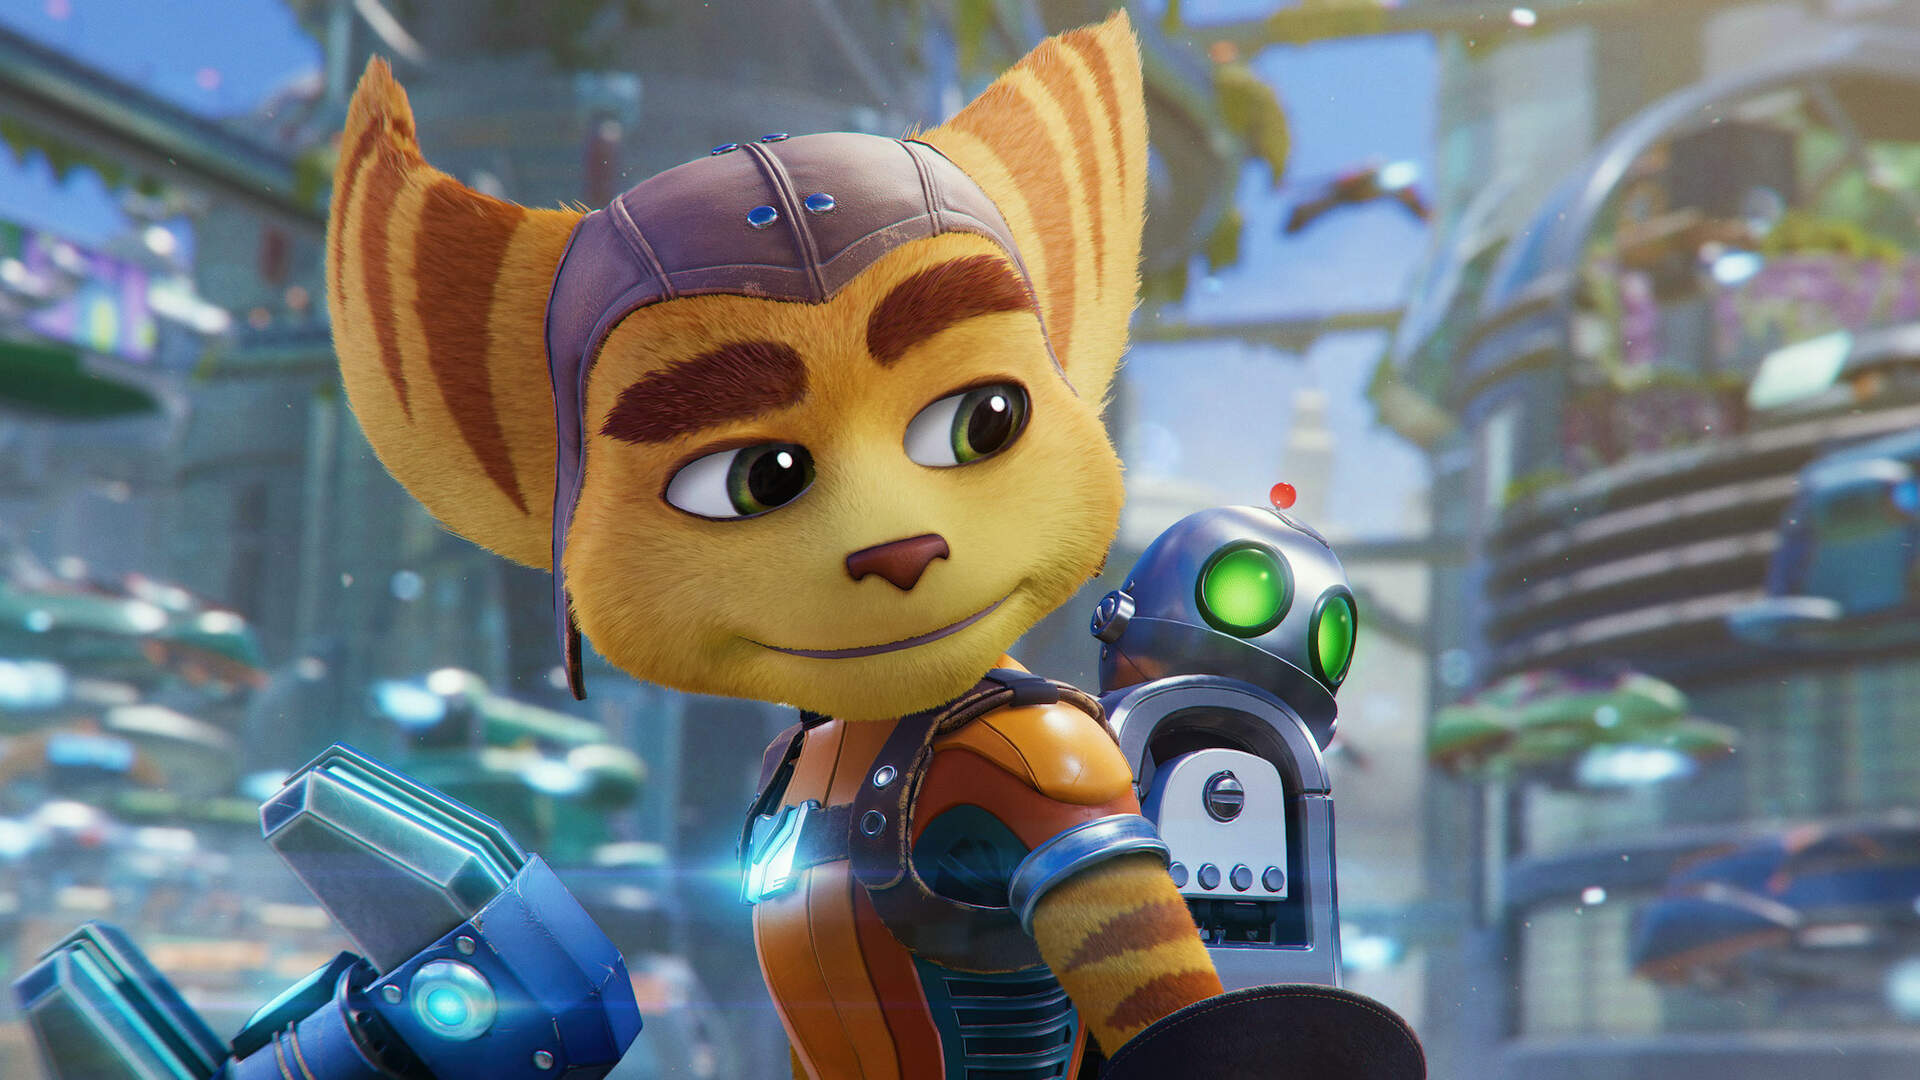 Ratchet & Clank: Rift Apart Will Be Playable at 60FPS on PS5